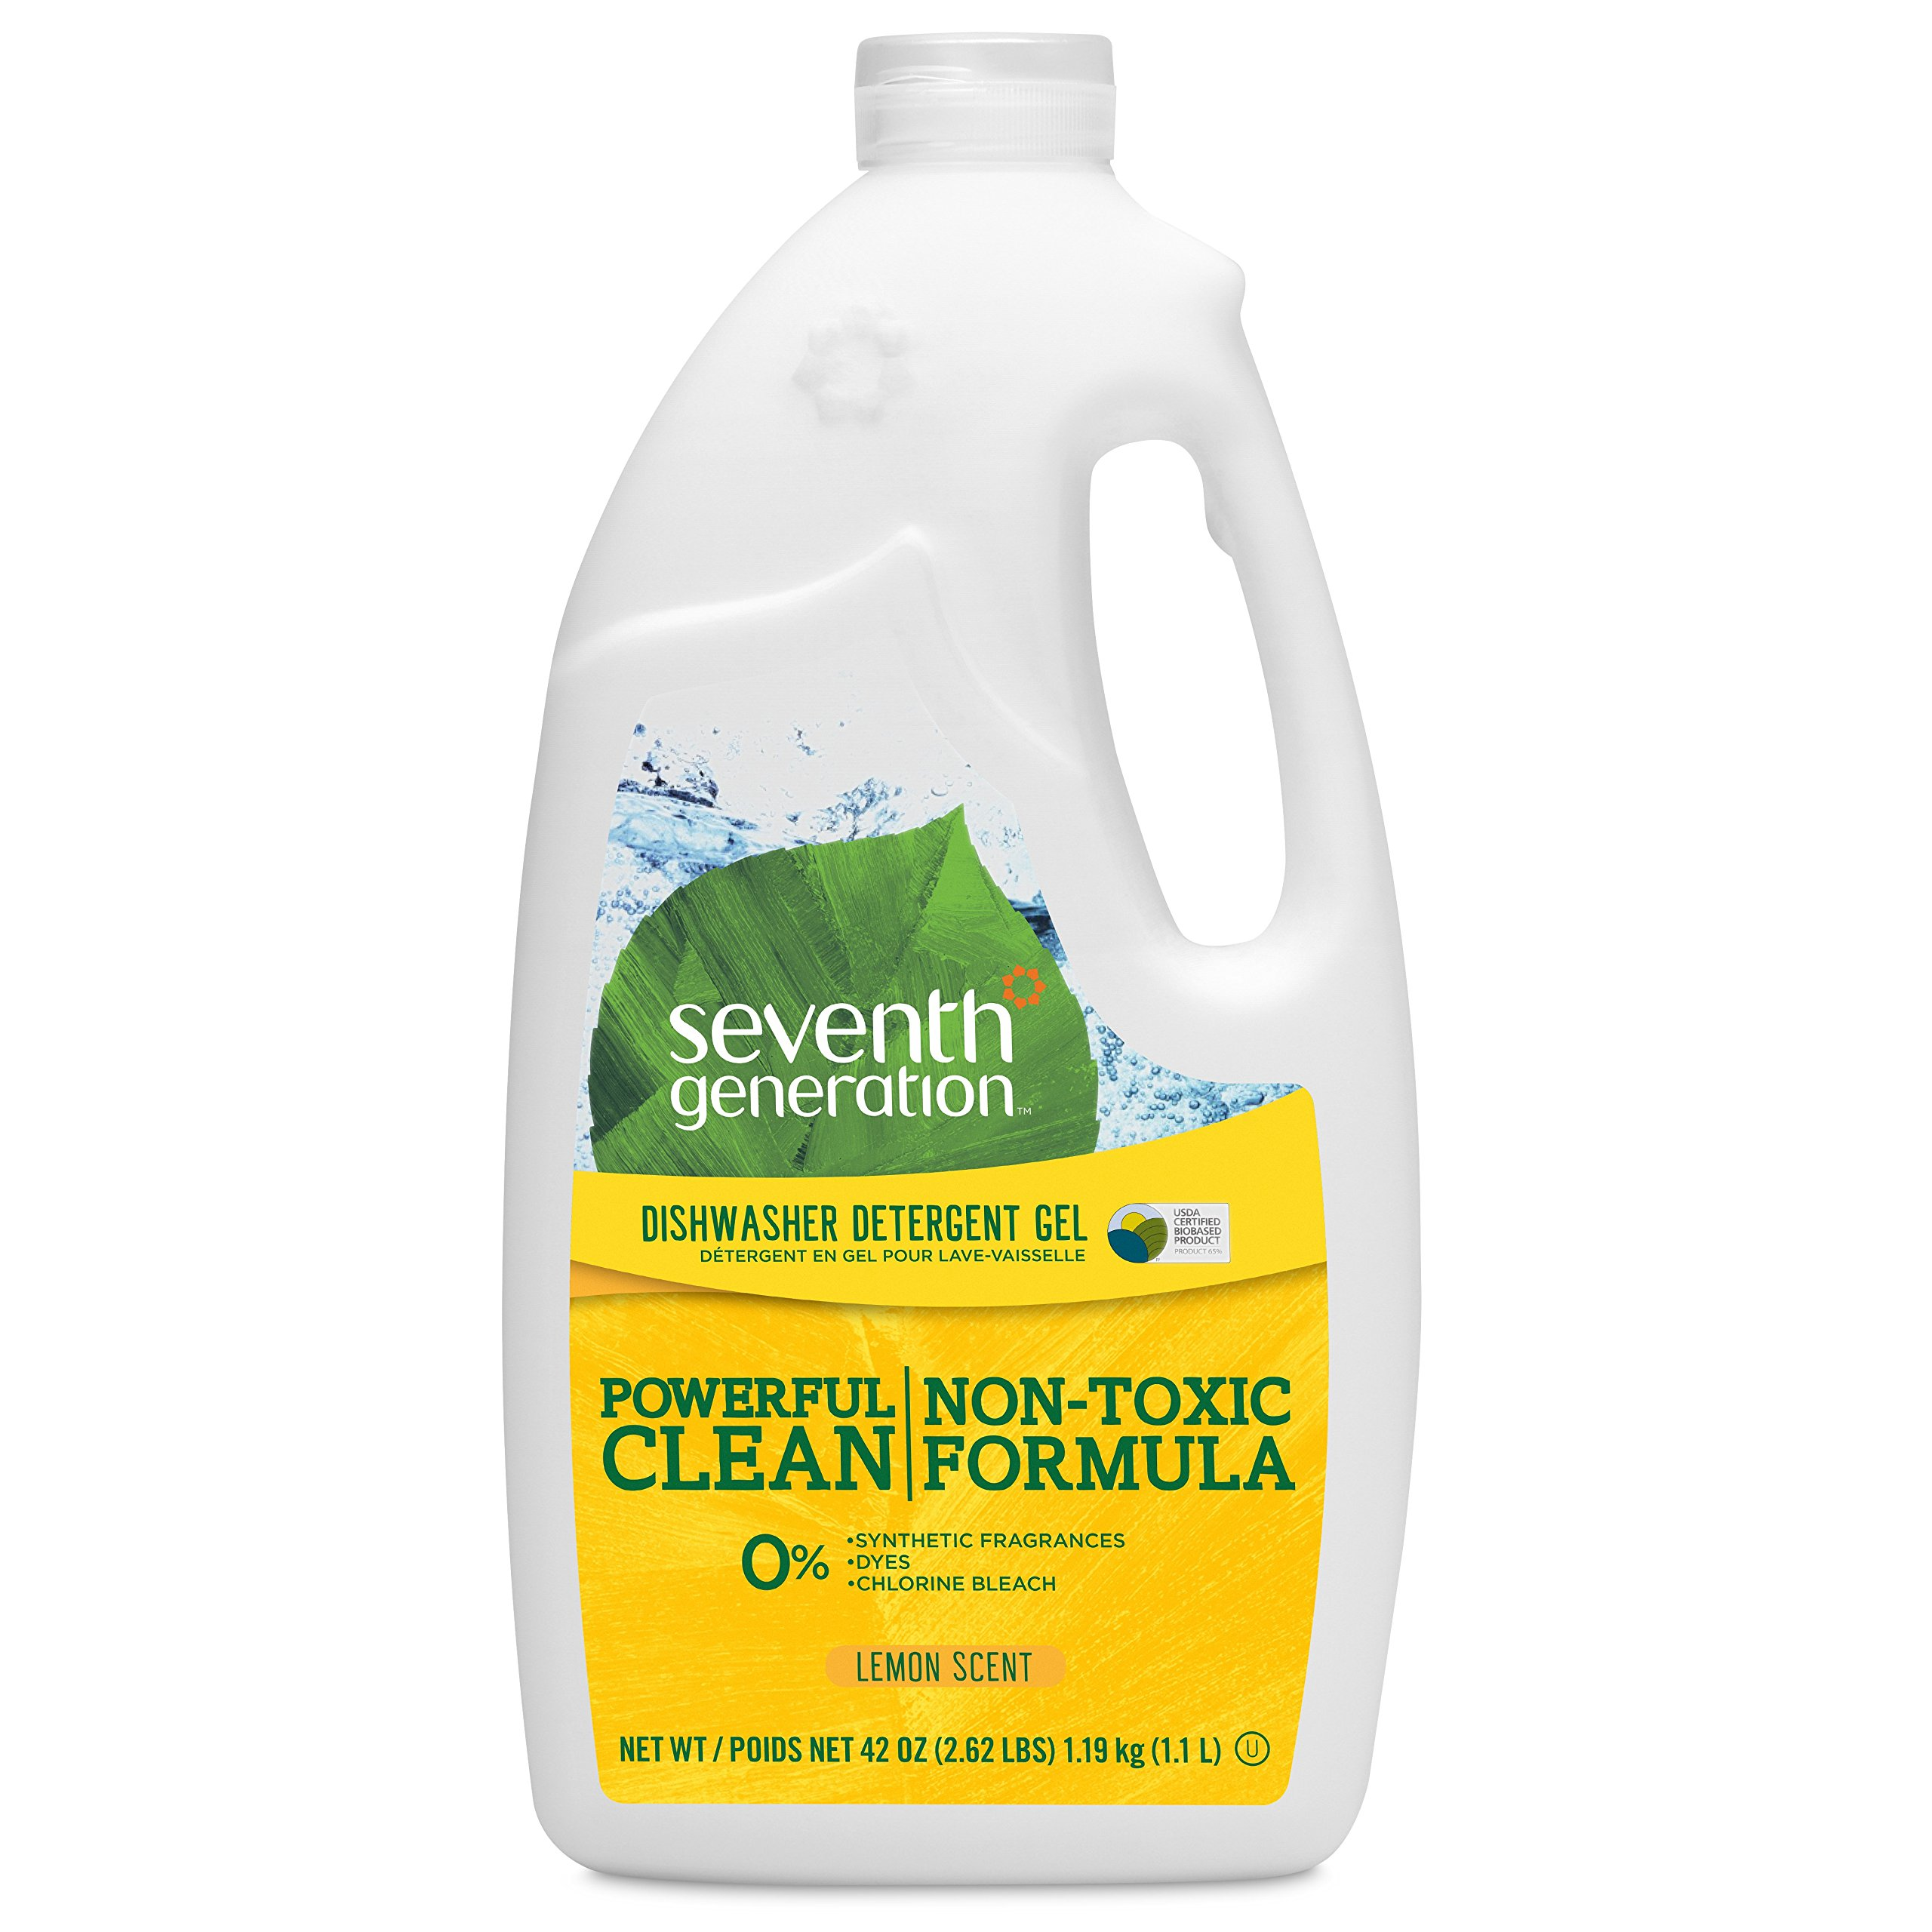 Seventh Generation Dishwasher Detergent Gel Soap, Lemon Scent, 42-Ounce Bottles, Pack of 6, Packaging May Vary